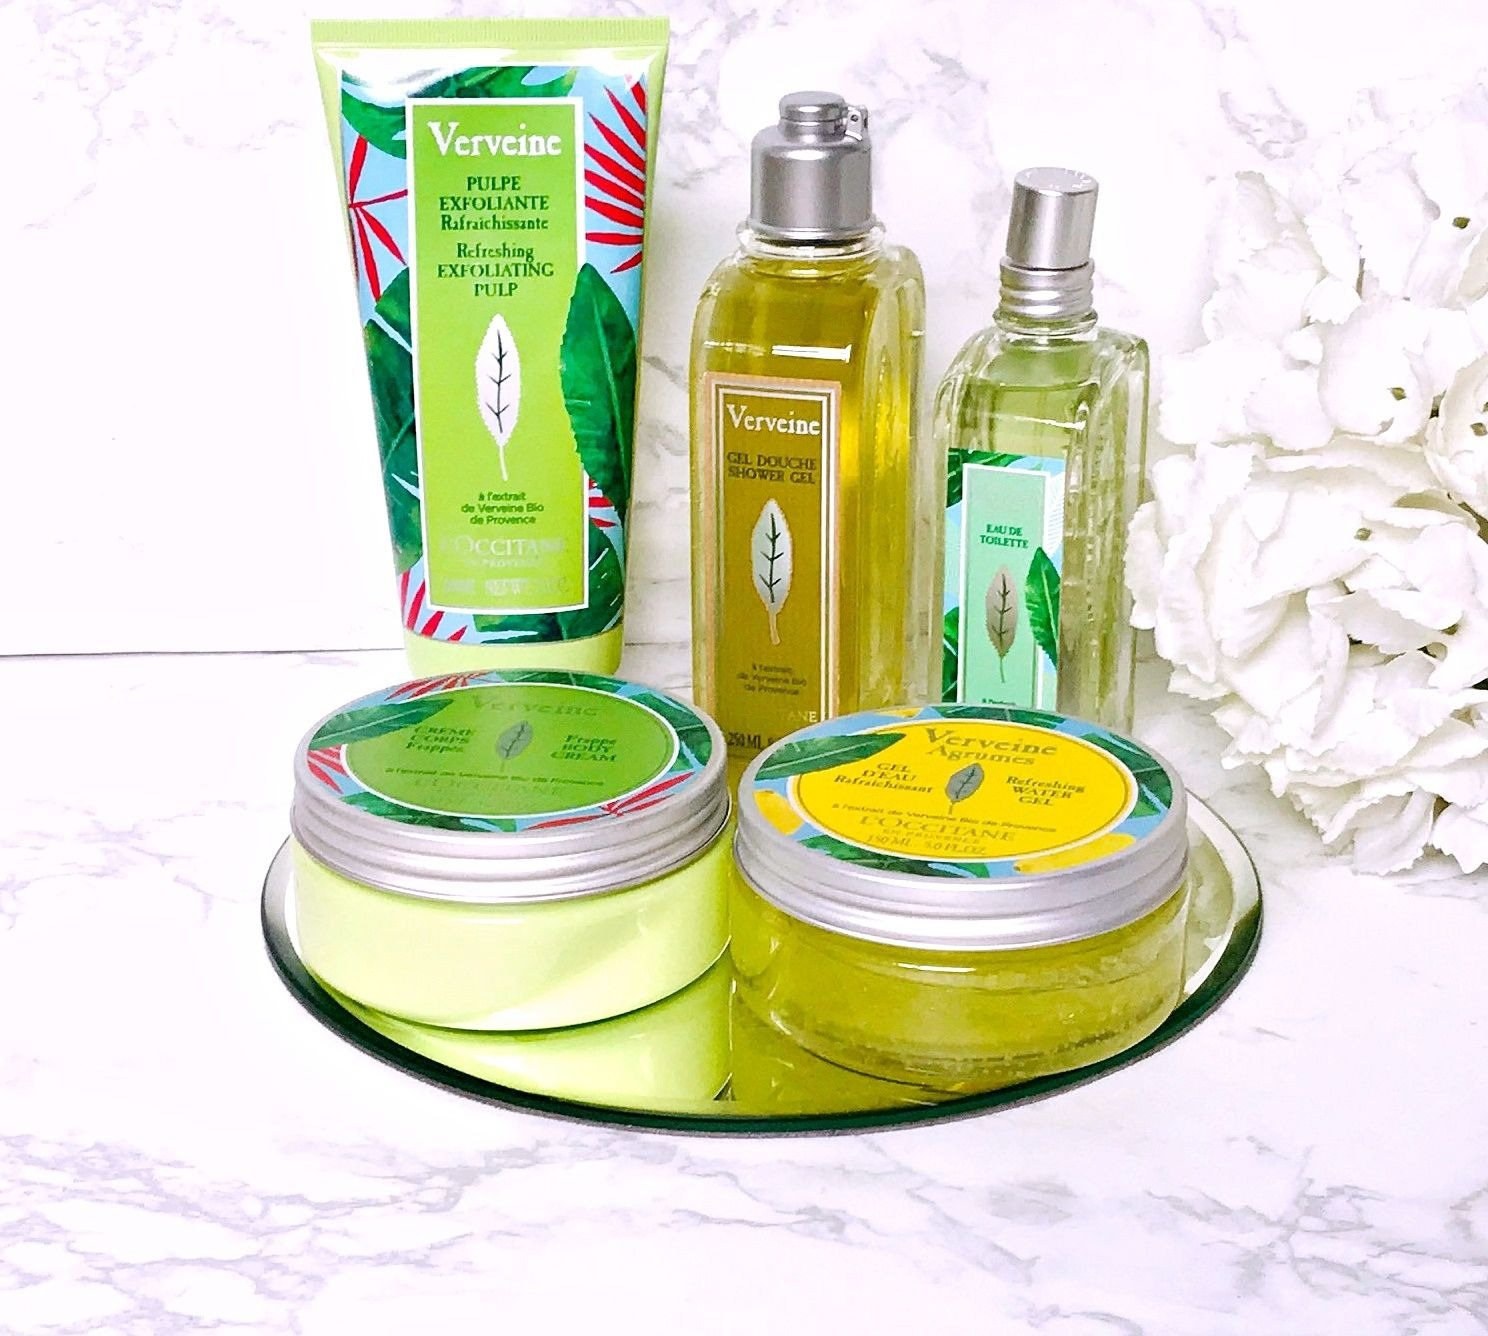 L'Occitane limited edition Verbena range Review